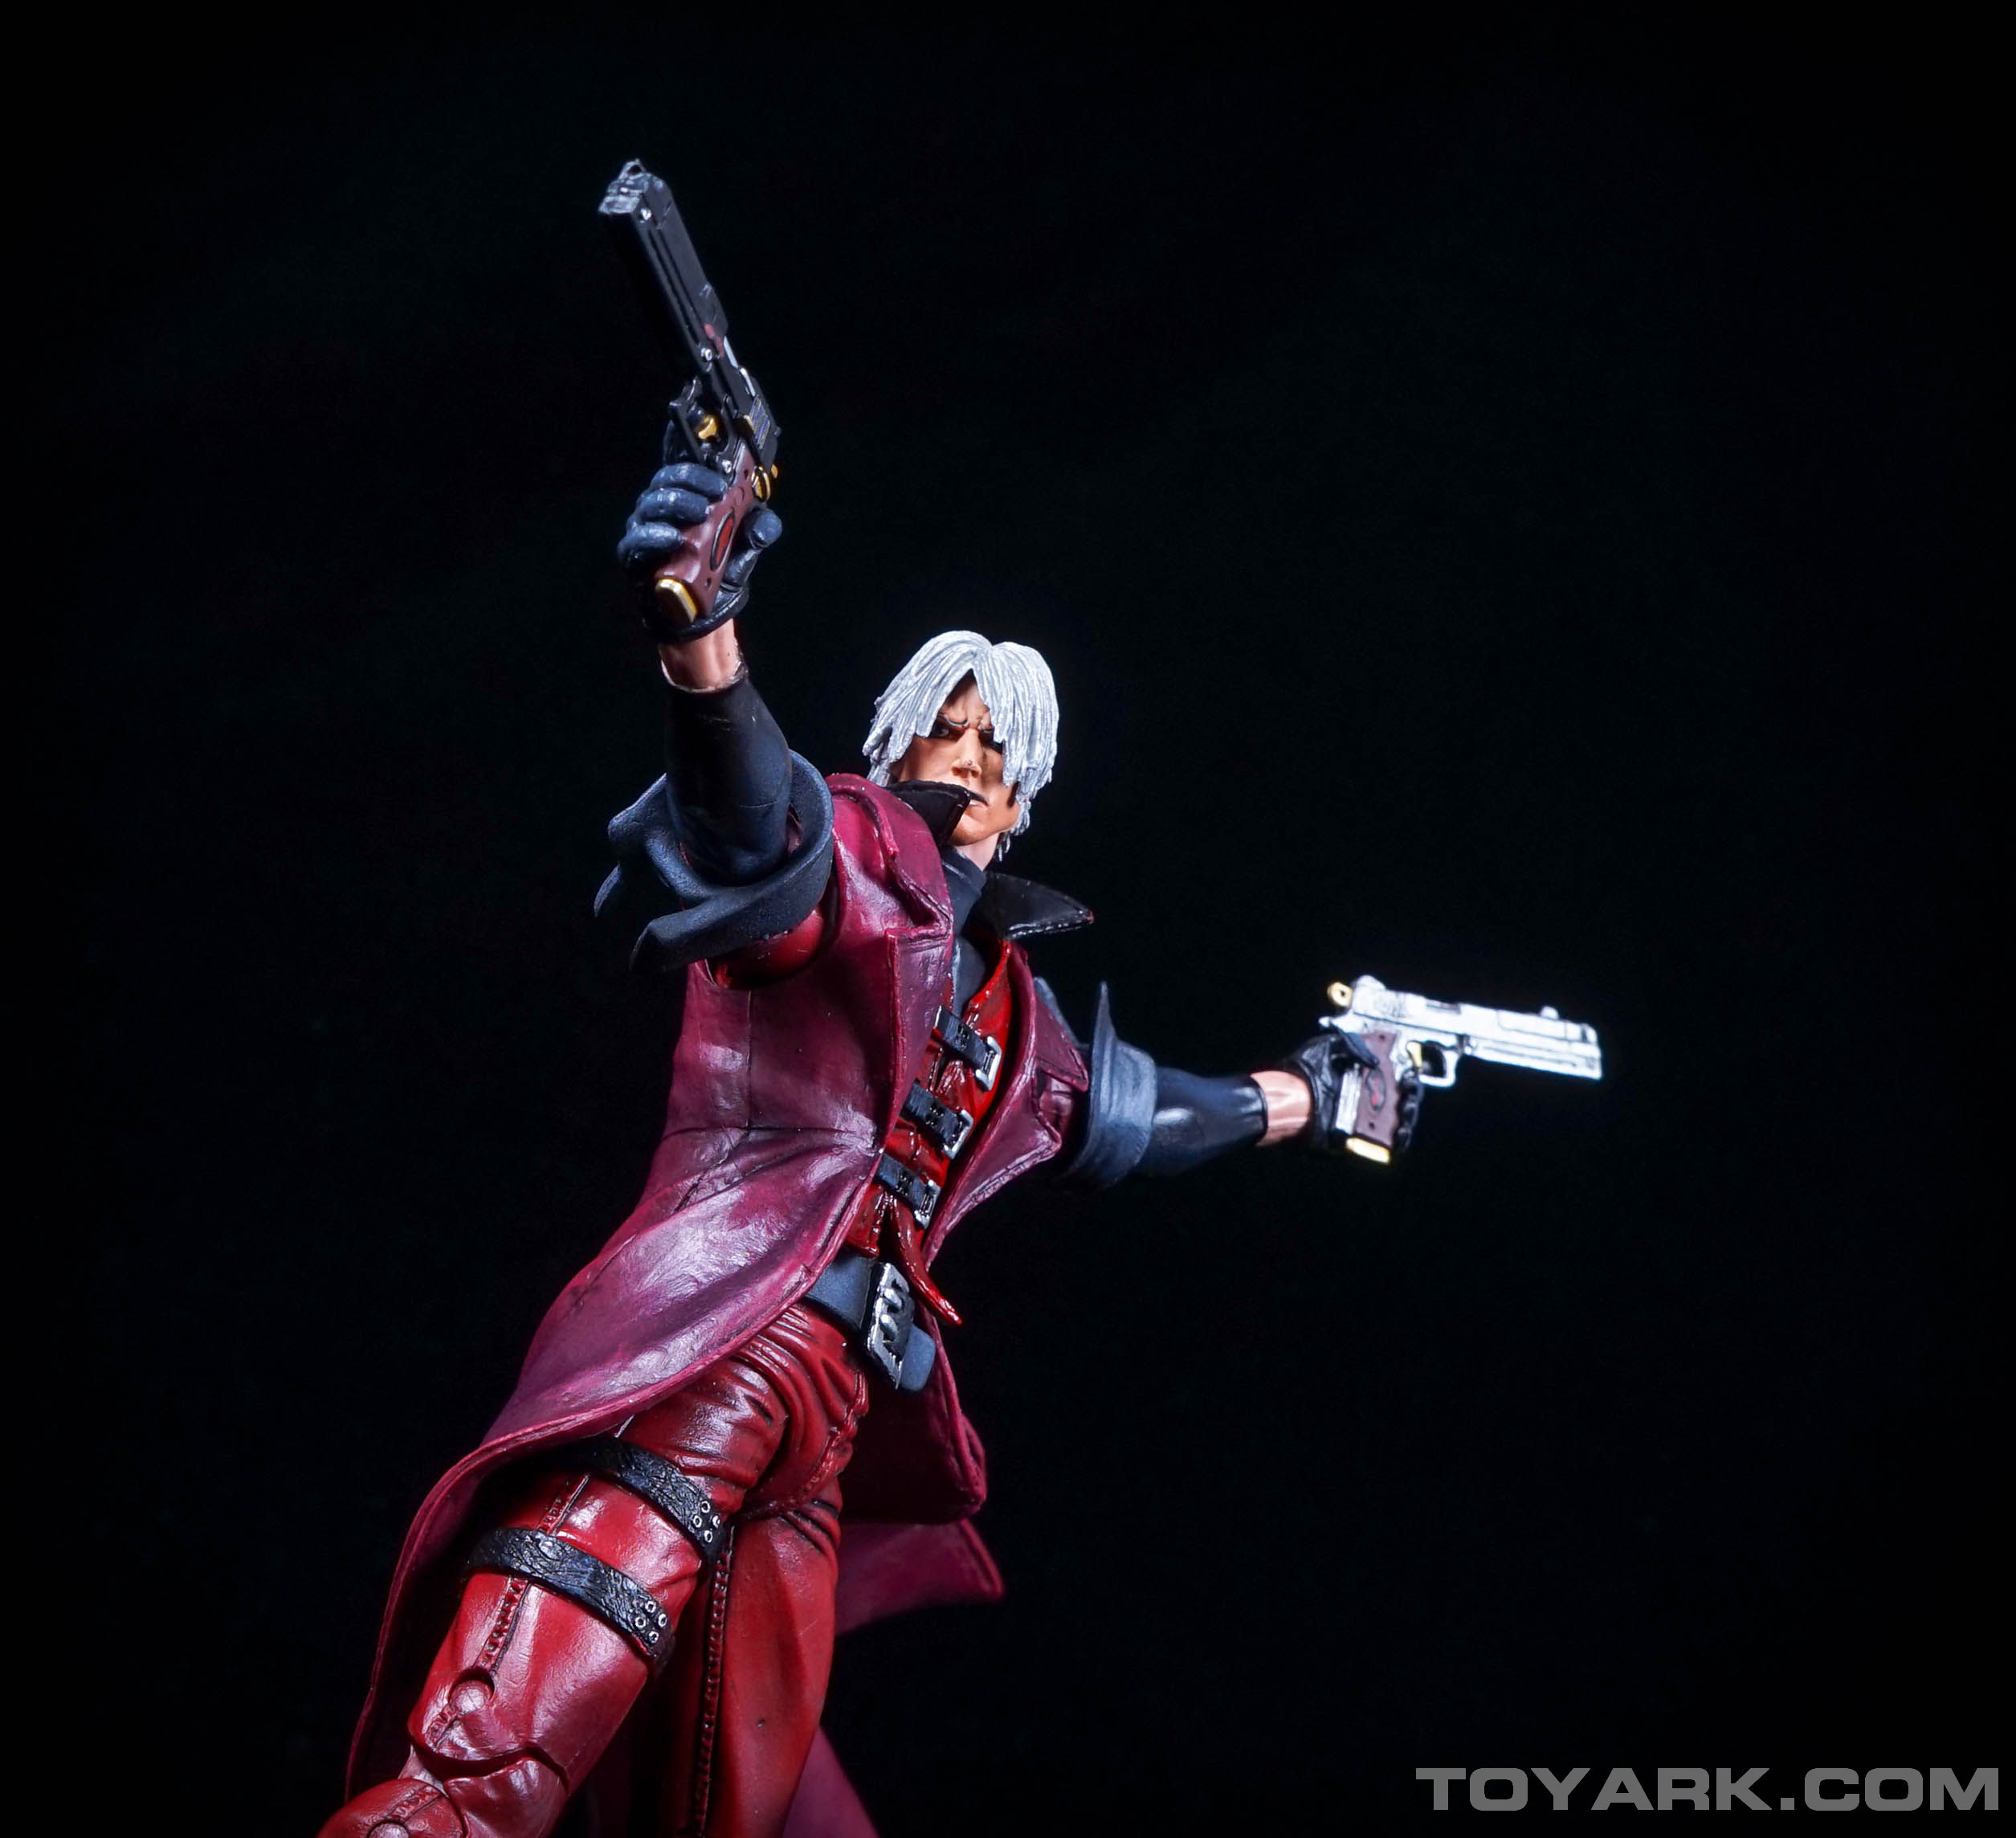 http://news.toyark.com/wp-content/uploads/sites/4/2015/06/NECA-Devil-May-Cry-Dante-033.jpg